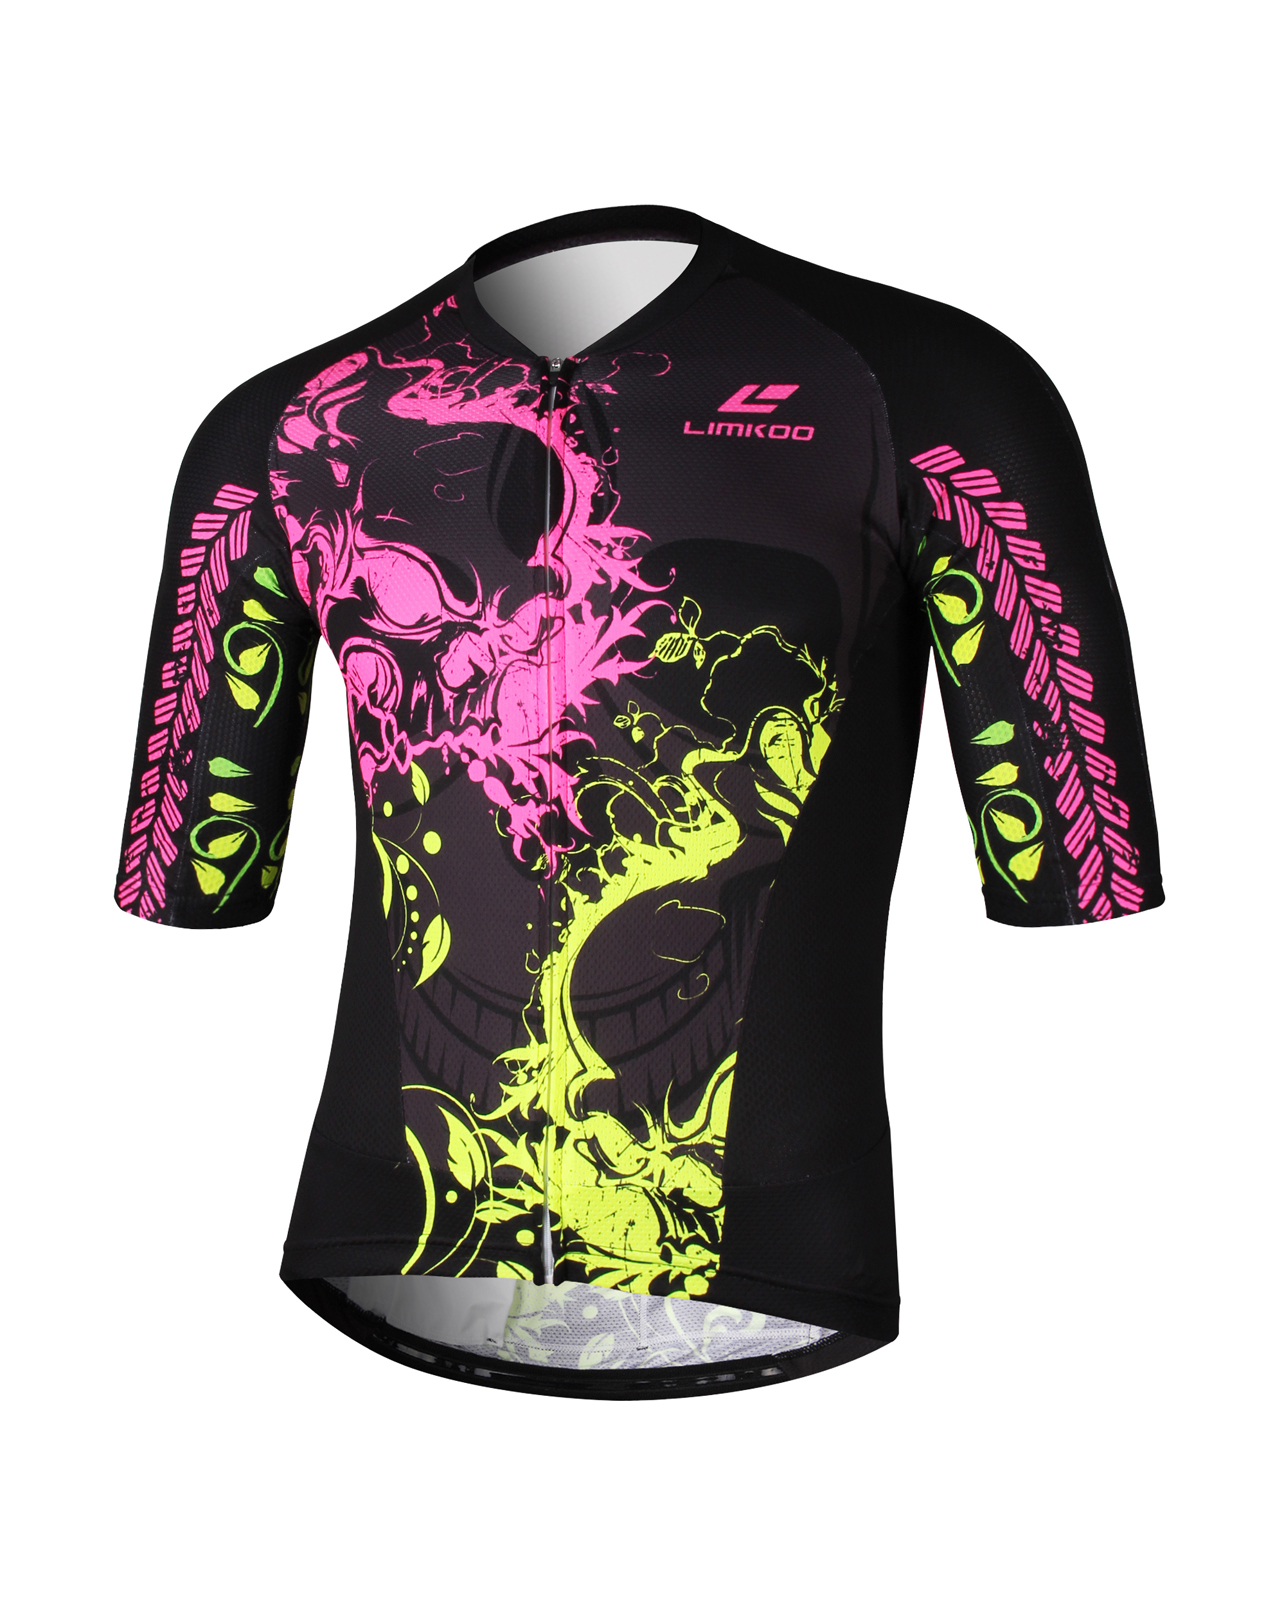 Italian DIMPLE DRY Cycling Pro Race Jersey